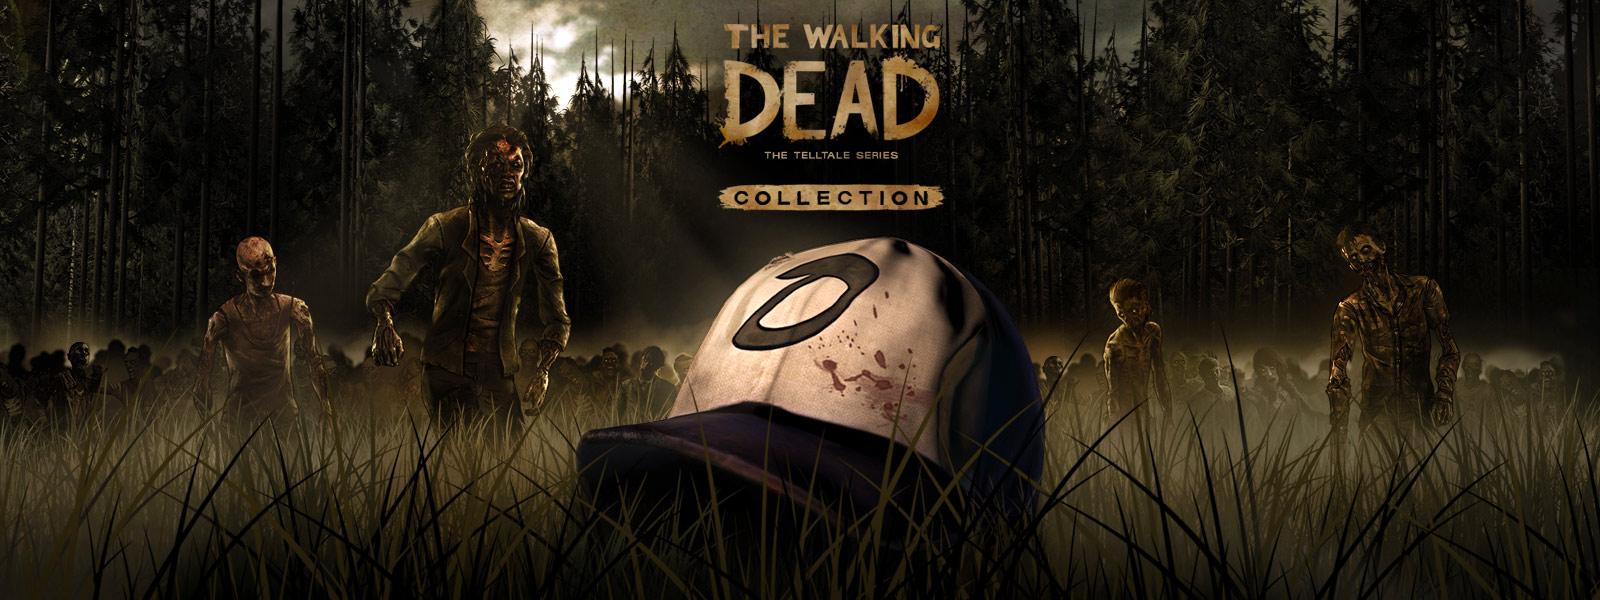 The Walking Dead - The Telltale Series collection (Clementine's hat lies in a field as a horde of zombies approach)